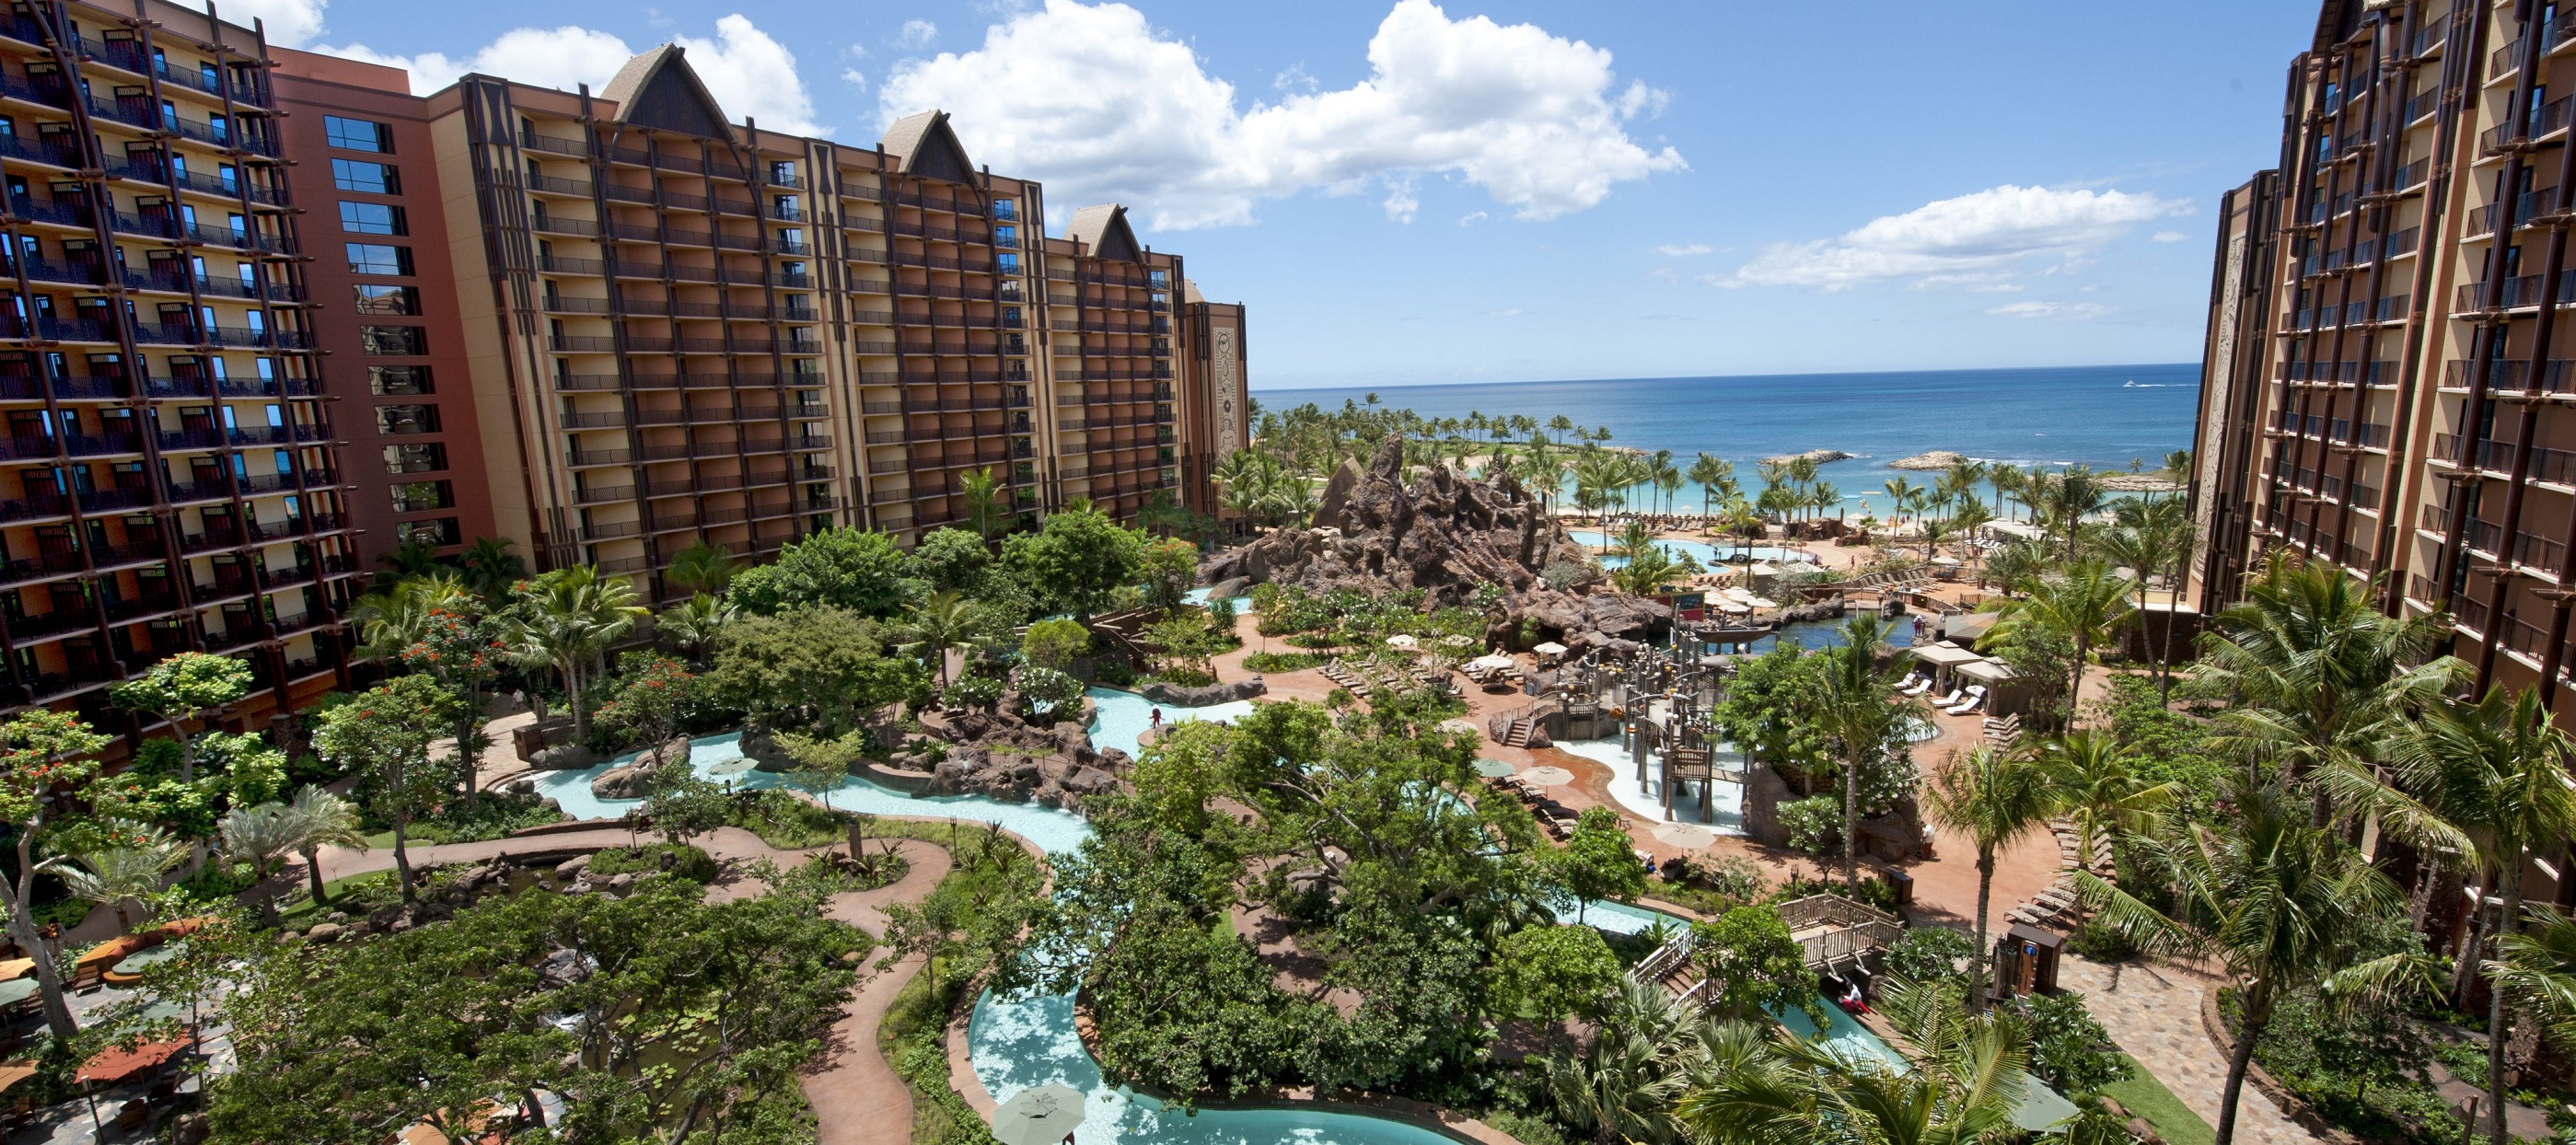 Disney's Aulani Hawaii Resort Waikolohe Valley